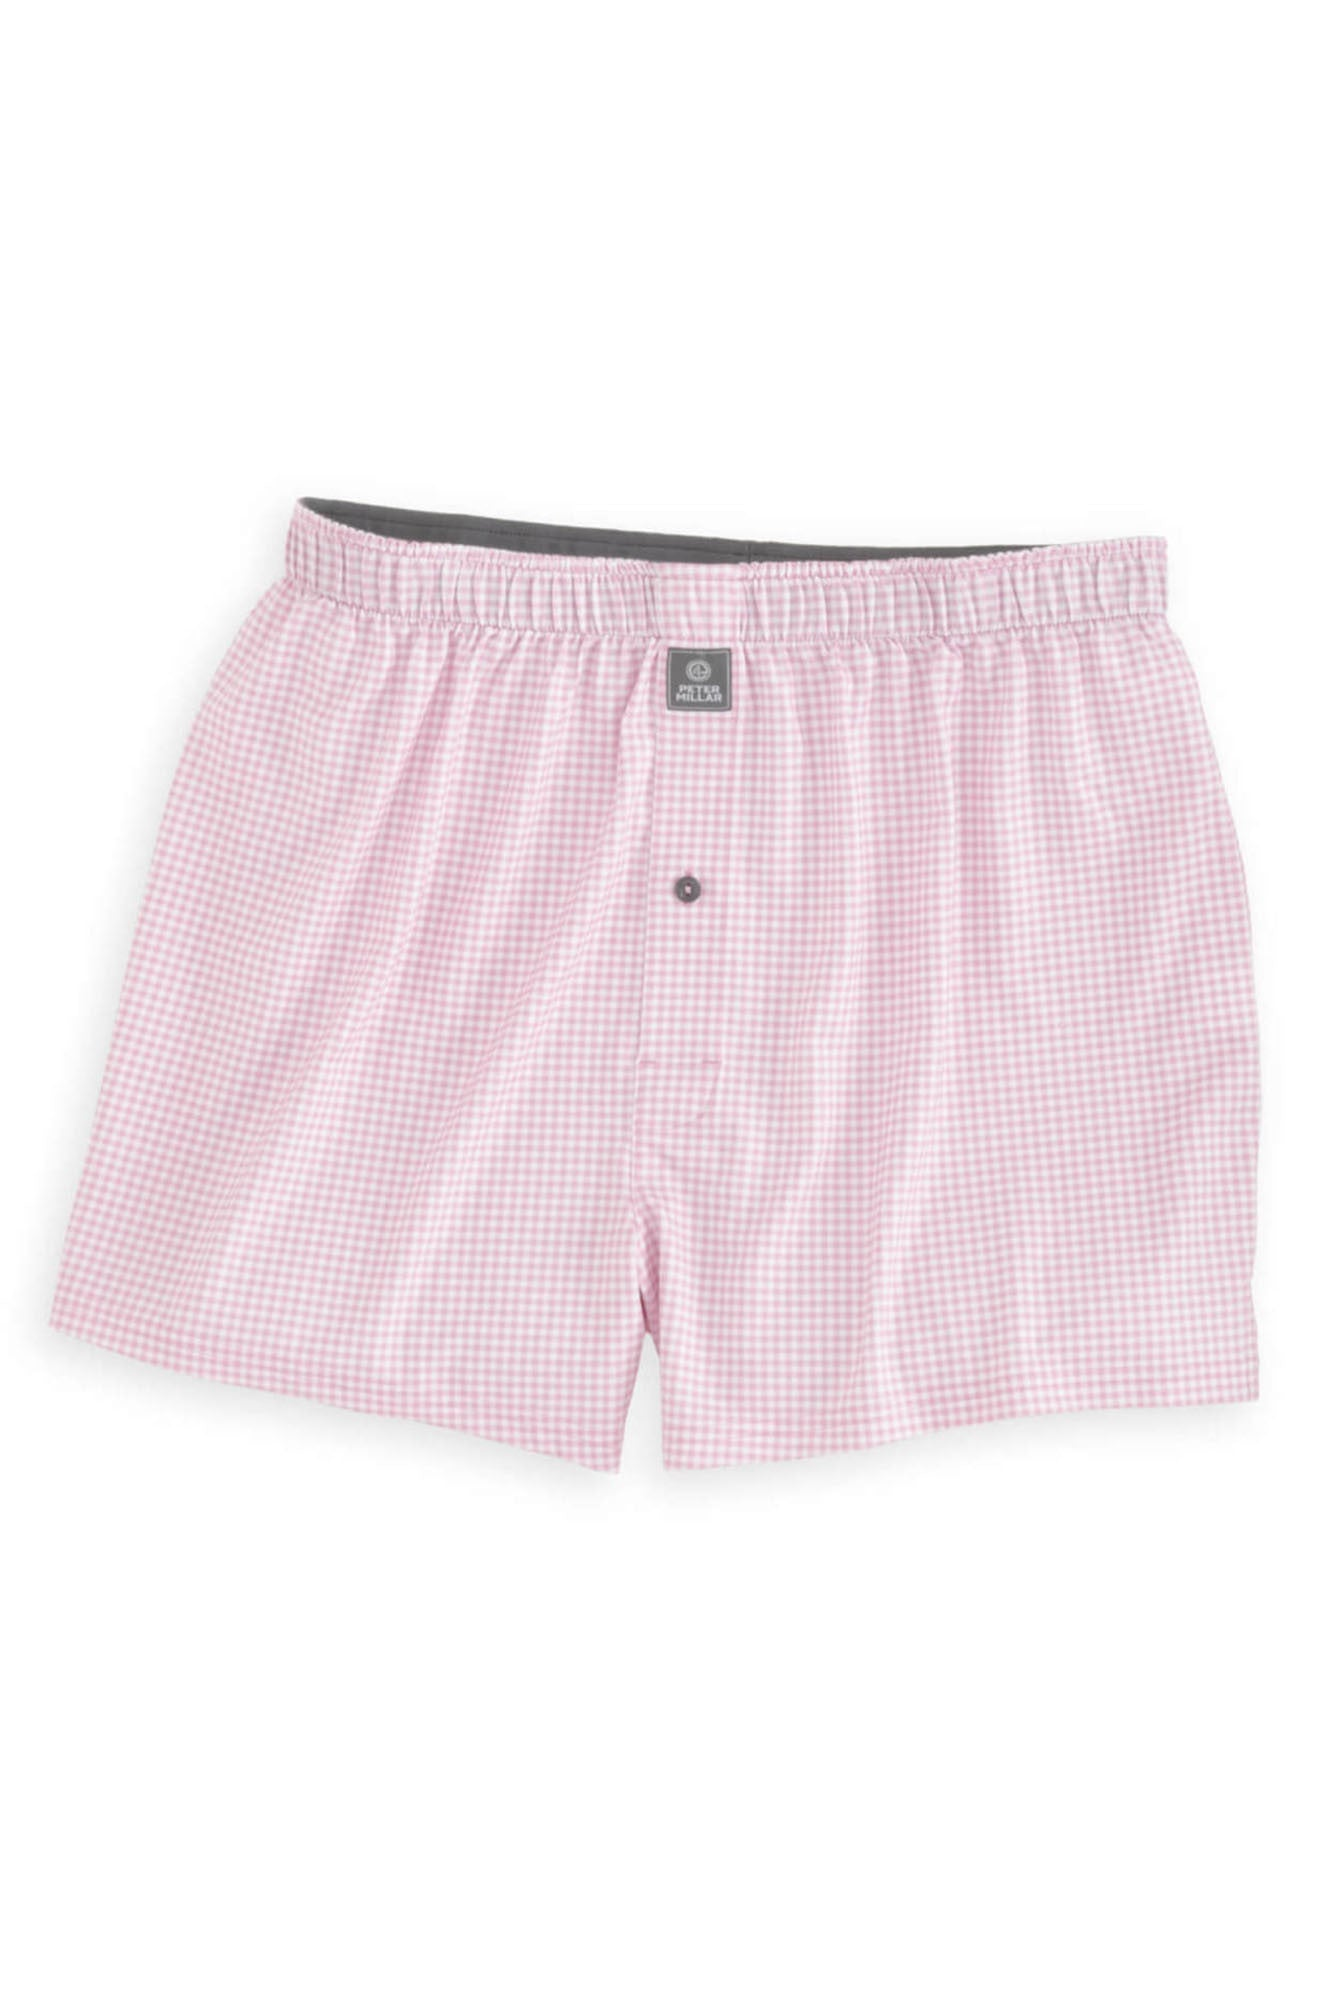 NEBRASKA GINGHAM STRETCH BOXER-BERMUDA PINK